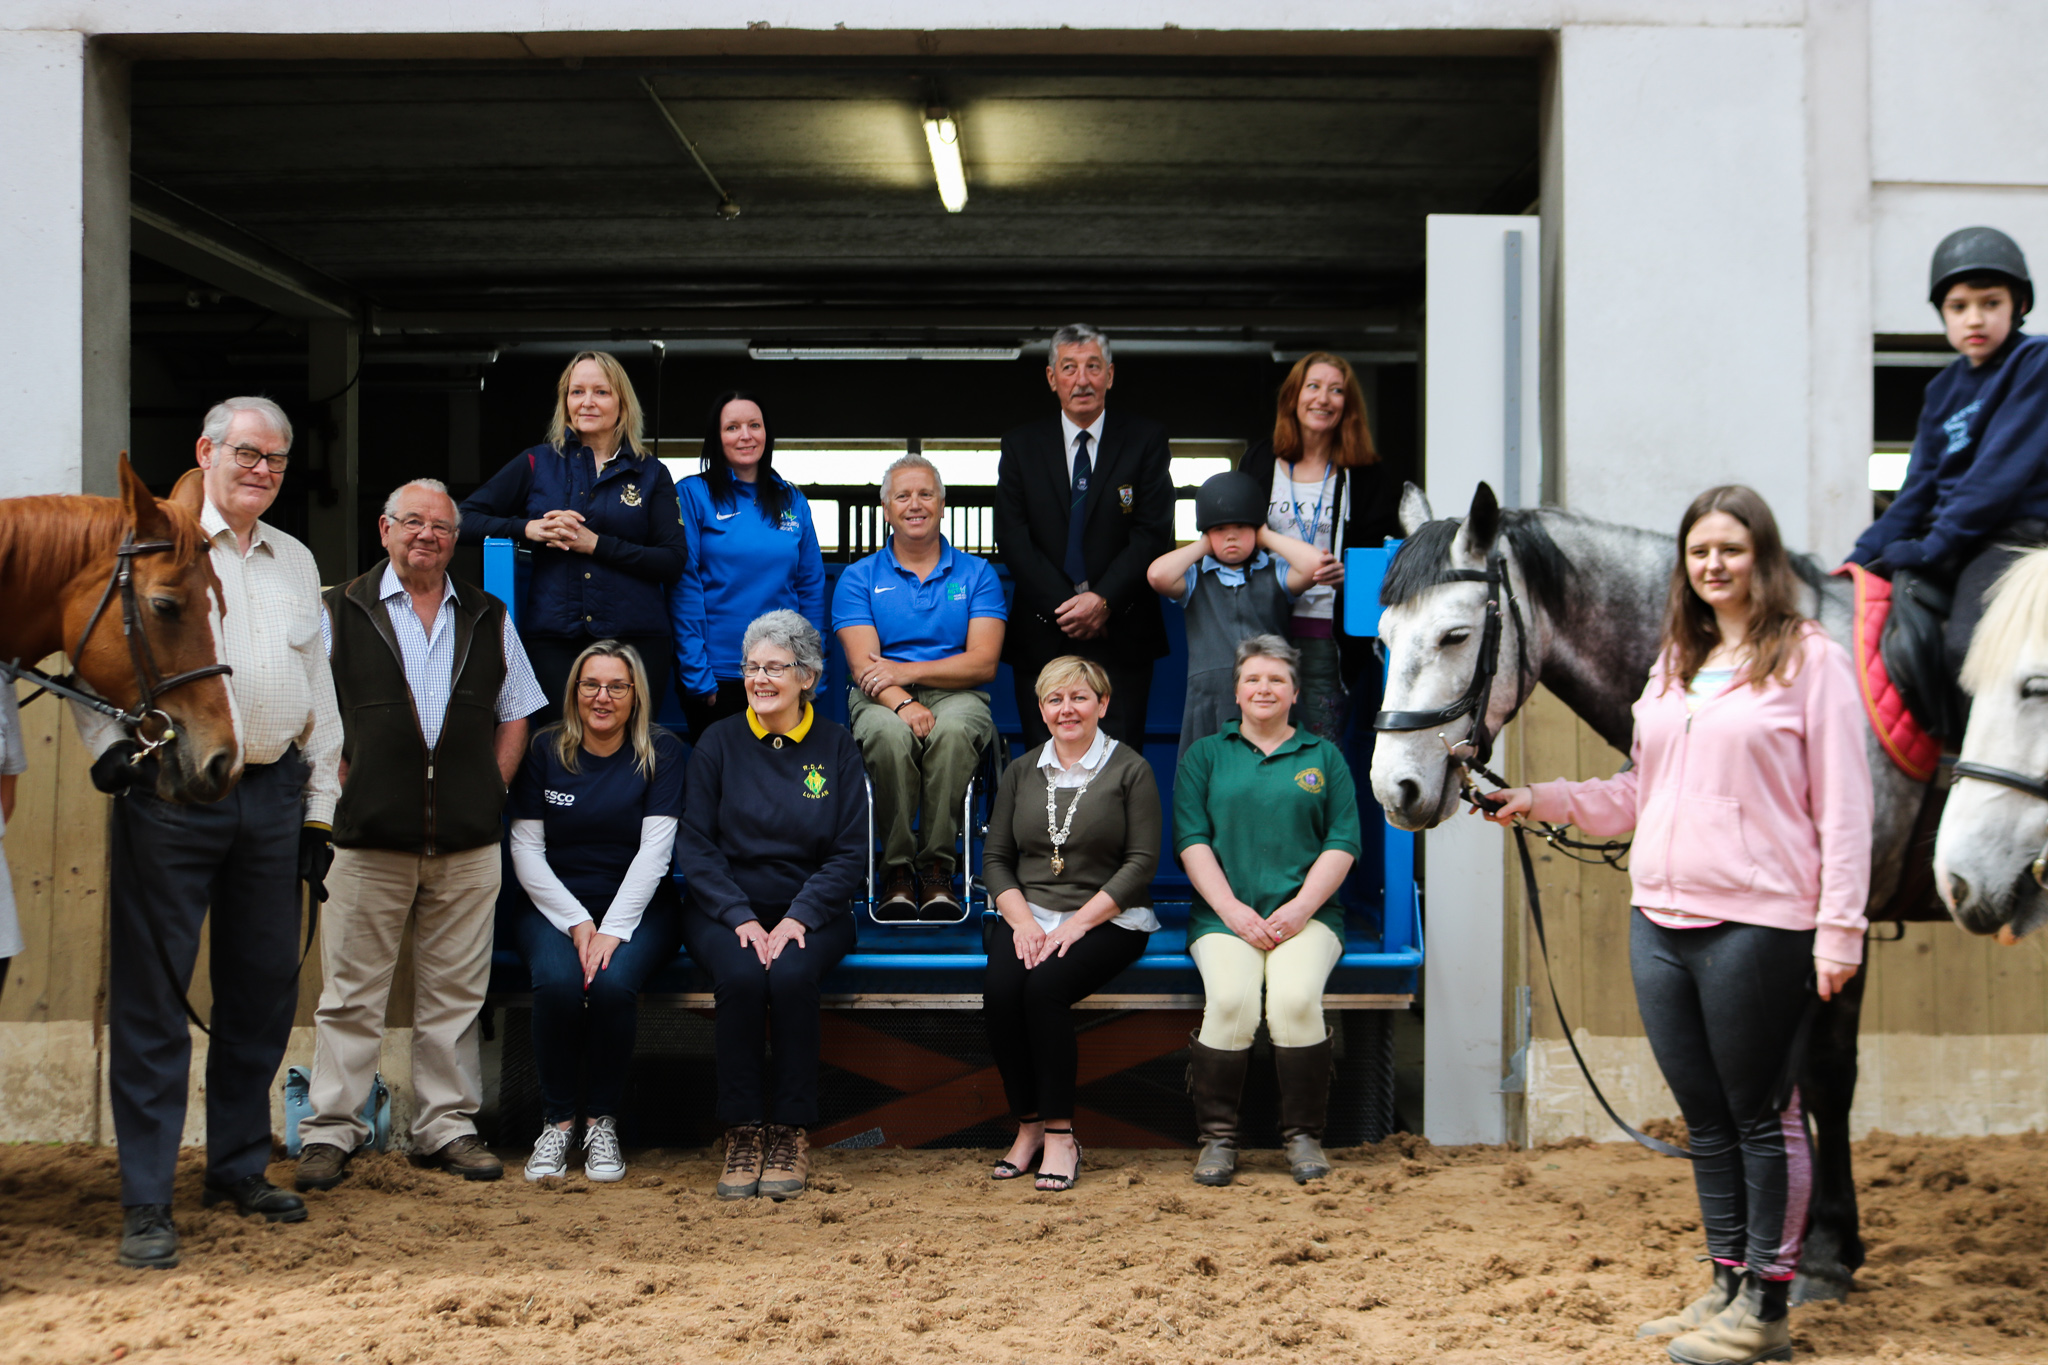 A group image of everyone from the RDA Lift Launch